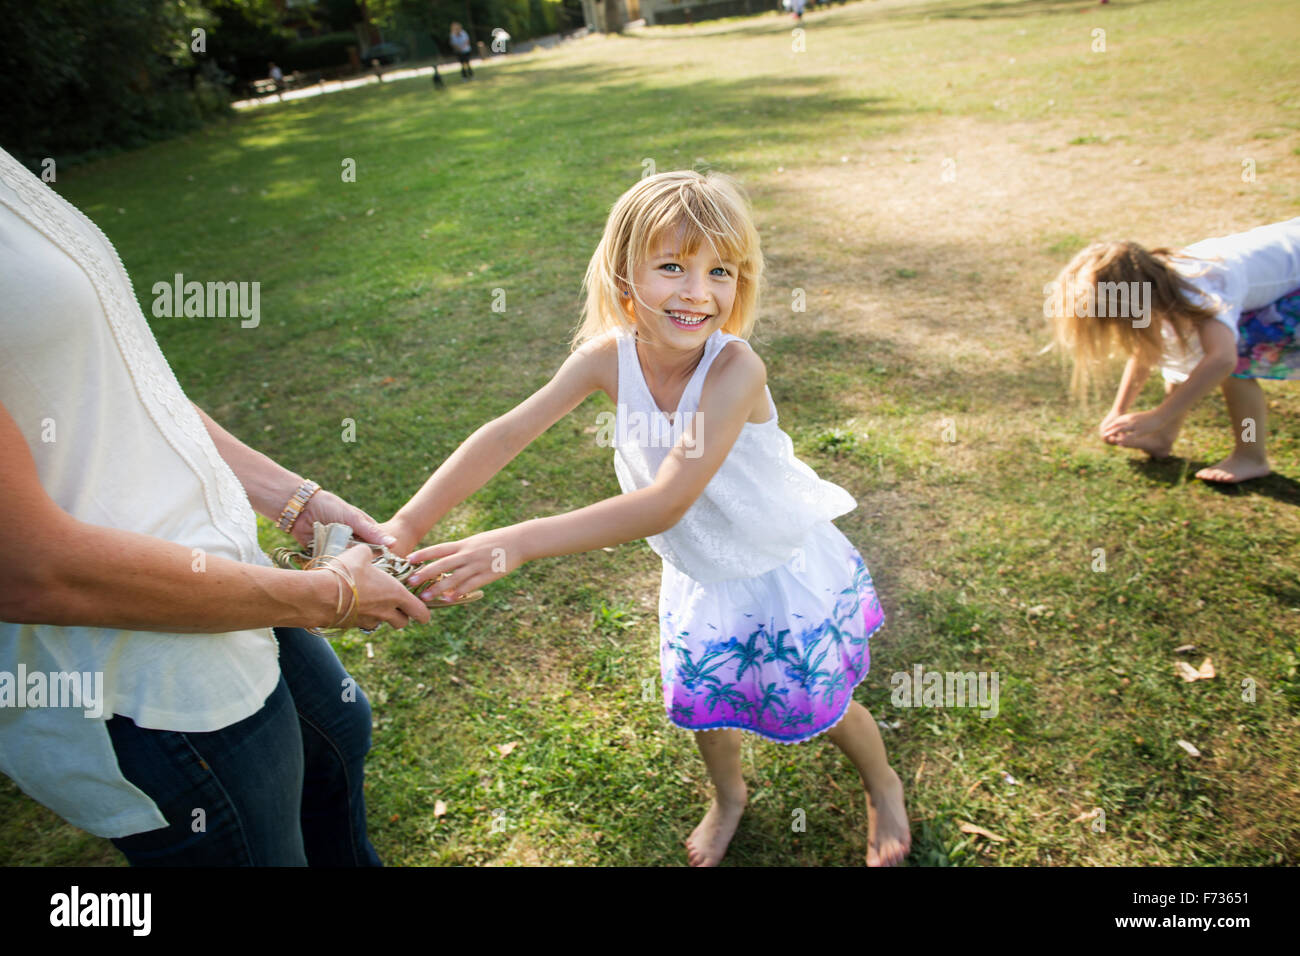 Mother playing with her daughters in a park. - Stock Image